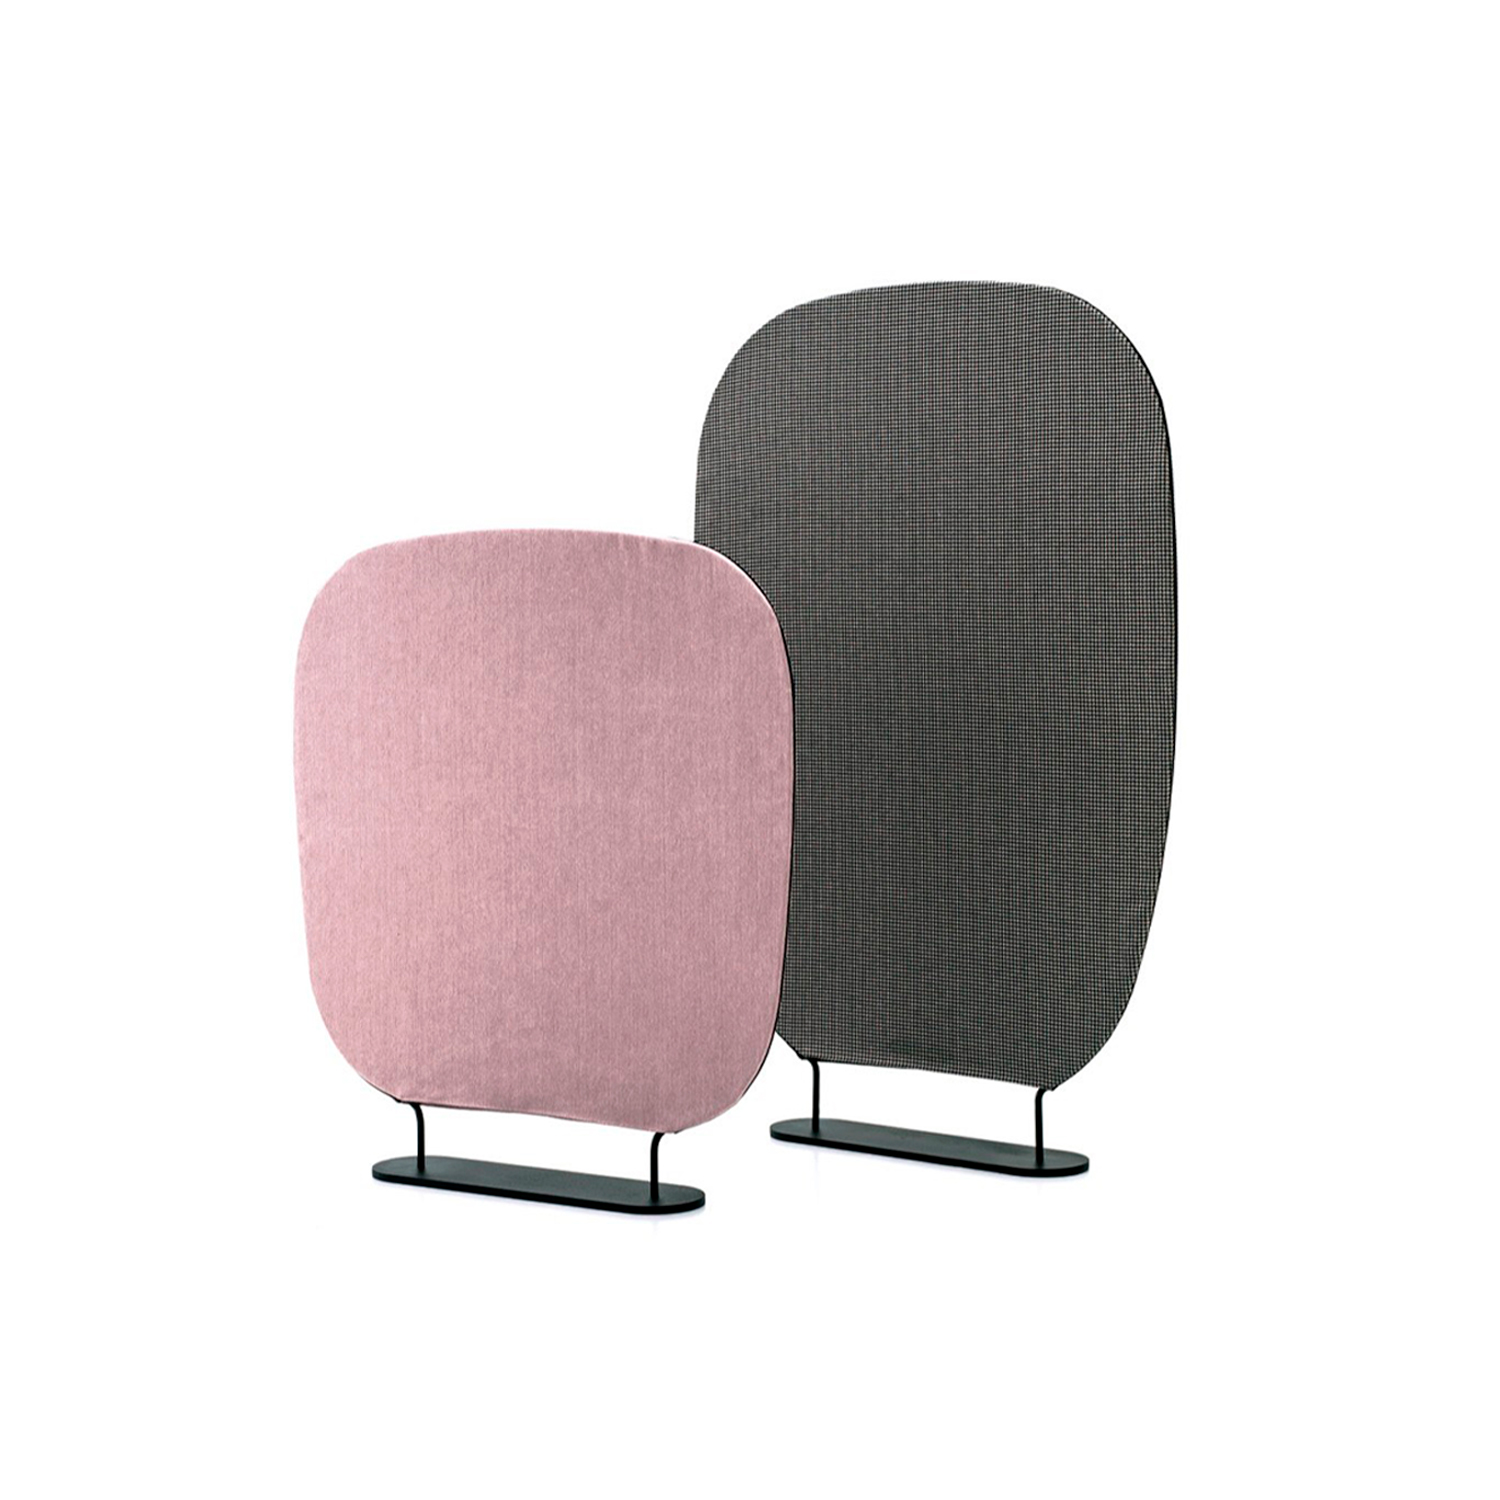 """Shade Room Divider - Shade, as in the Japanese meaning of """"divider"""", has been restyled in a contemporary way and found a place in the living area. Shade is a filter, a divider, a compact system created for constructing spaces: decorating, separating, reserving private and intimate corners. The two sizes and the different textiles for upholstery allow for a high degree of customization in terms of space and product. The lyrical design trait of Marco Zito is evident in the lack of corners, an organic and soft shape. Also available with soundproof insert.  Materials: Structure in coated wire drawn with diameter 18 mm with fabric upholstery. Base in coated steel h. 15 mm.  Structure:  Black RAL 9005 Matt 